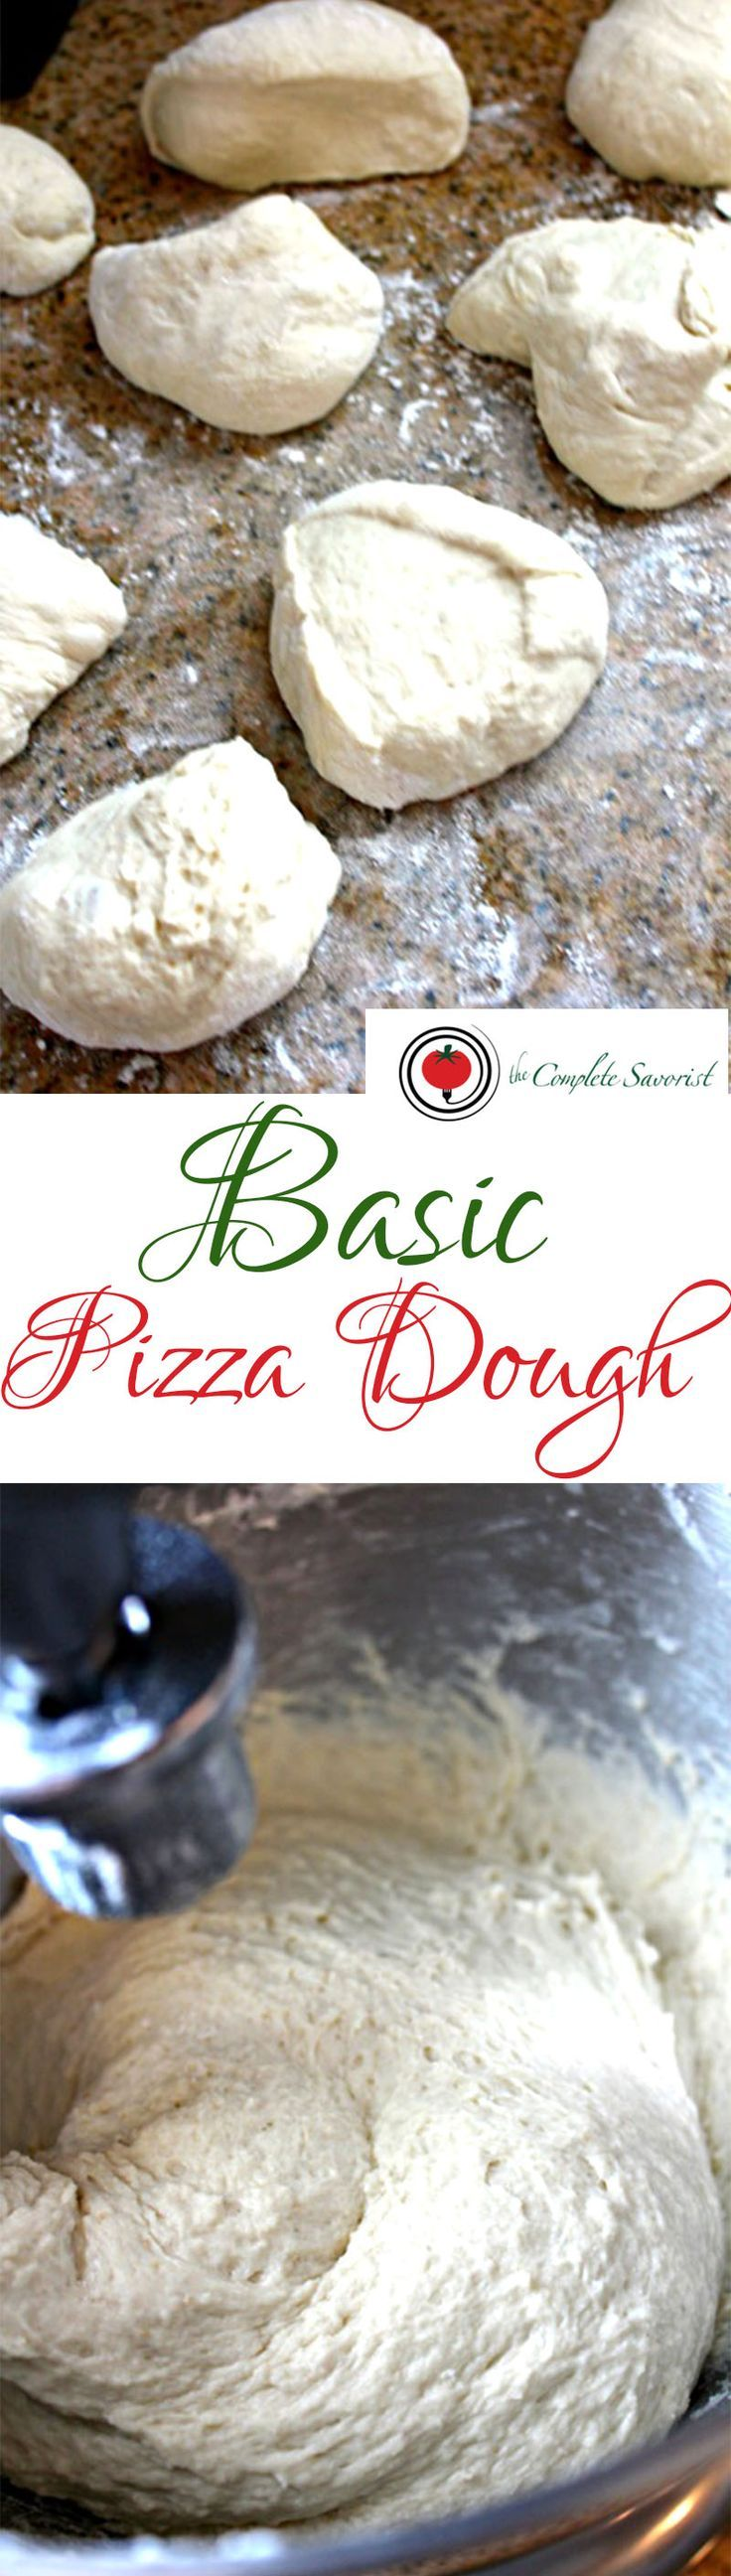 Basic Pizza Dough | Recipe | The o'jays, Awesome and Blog